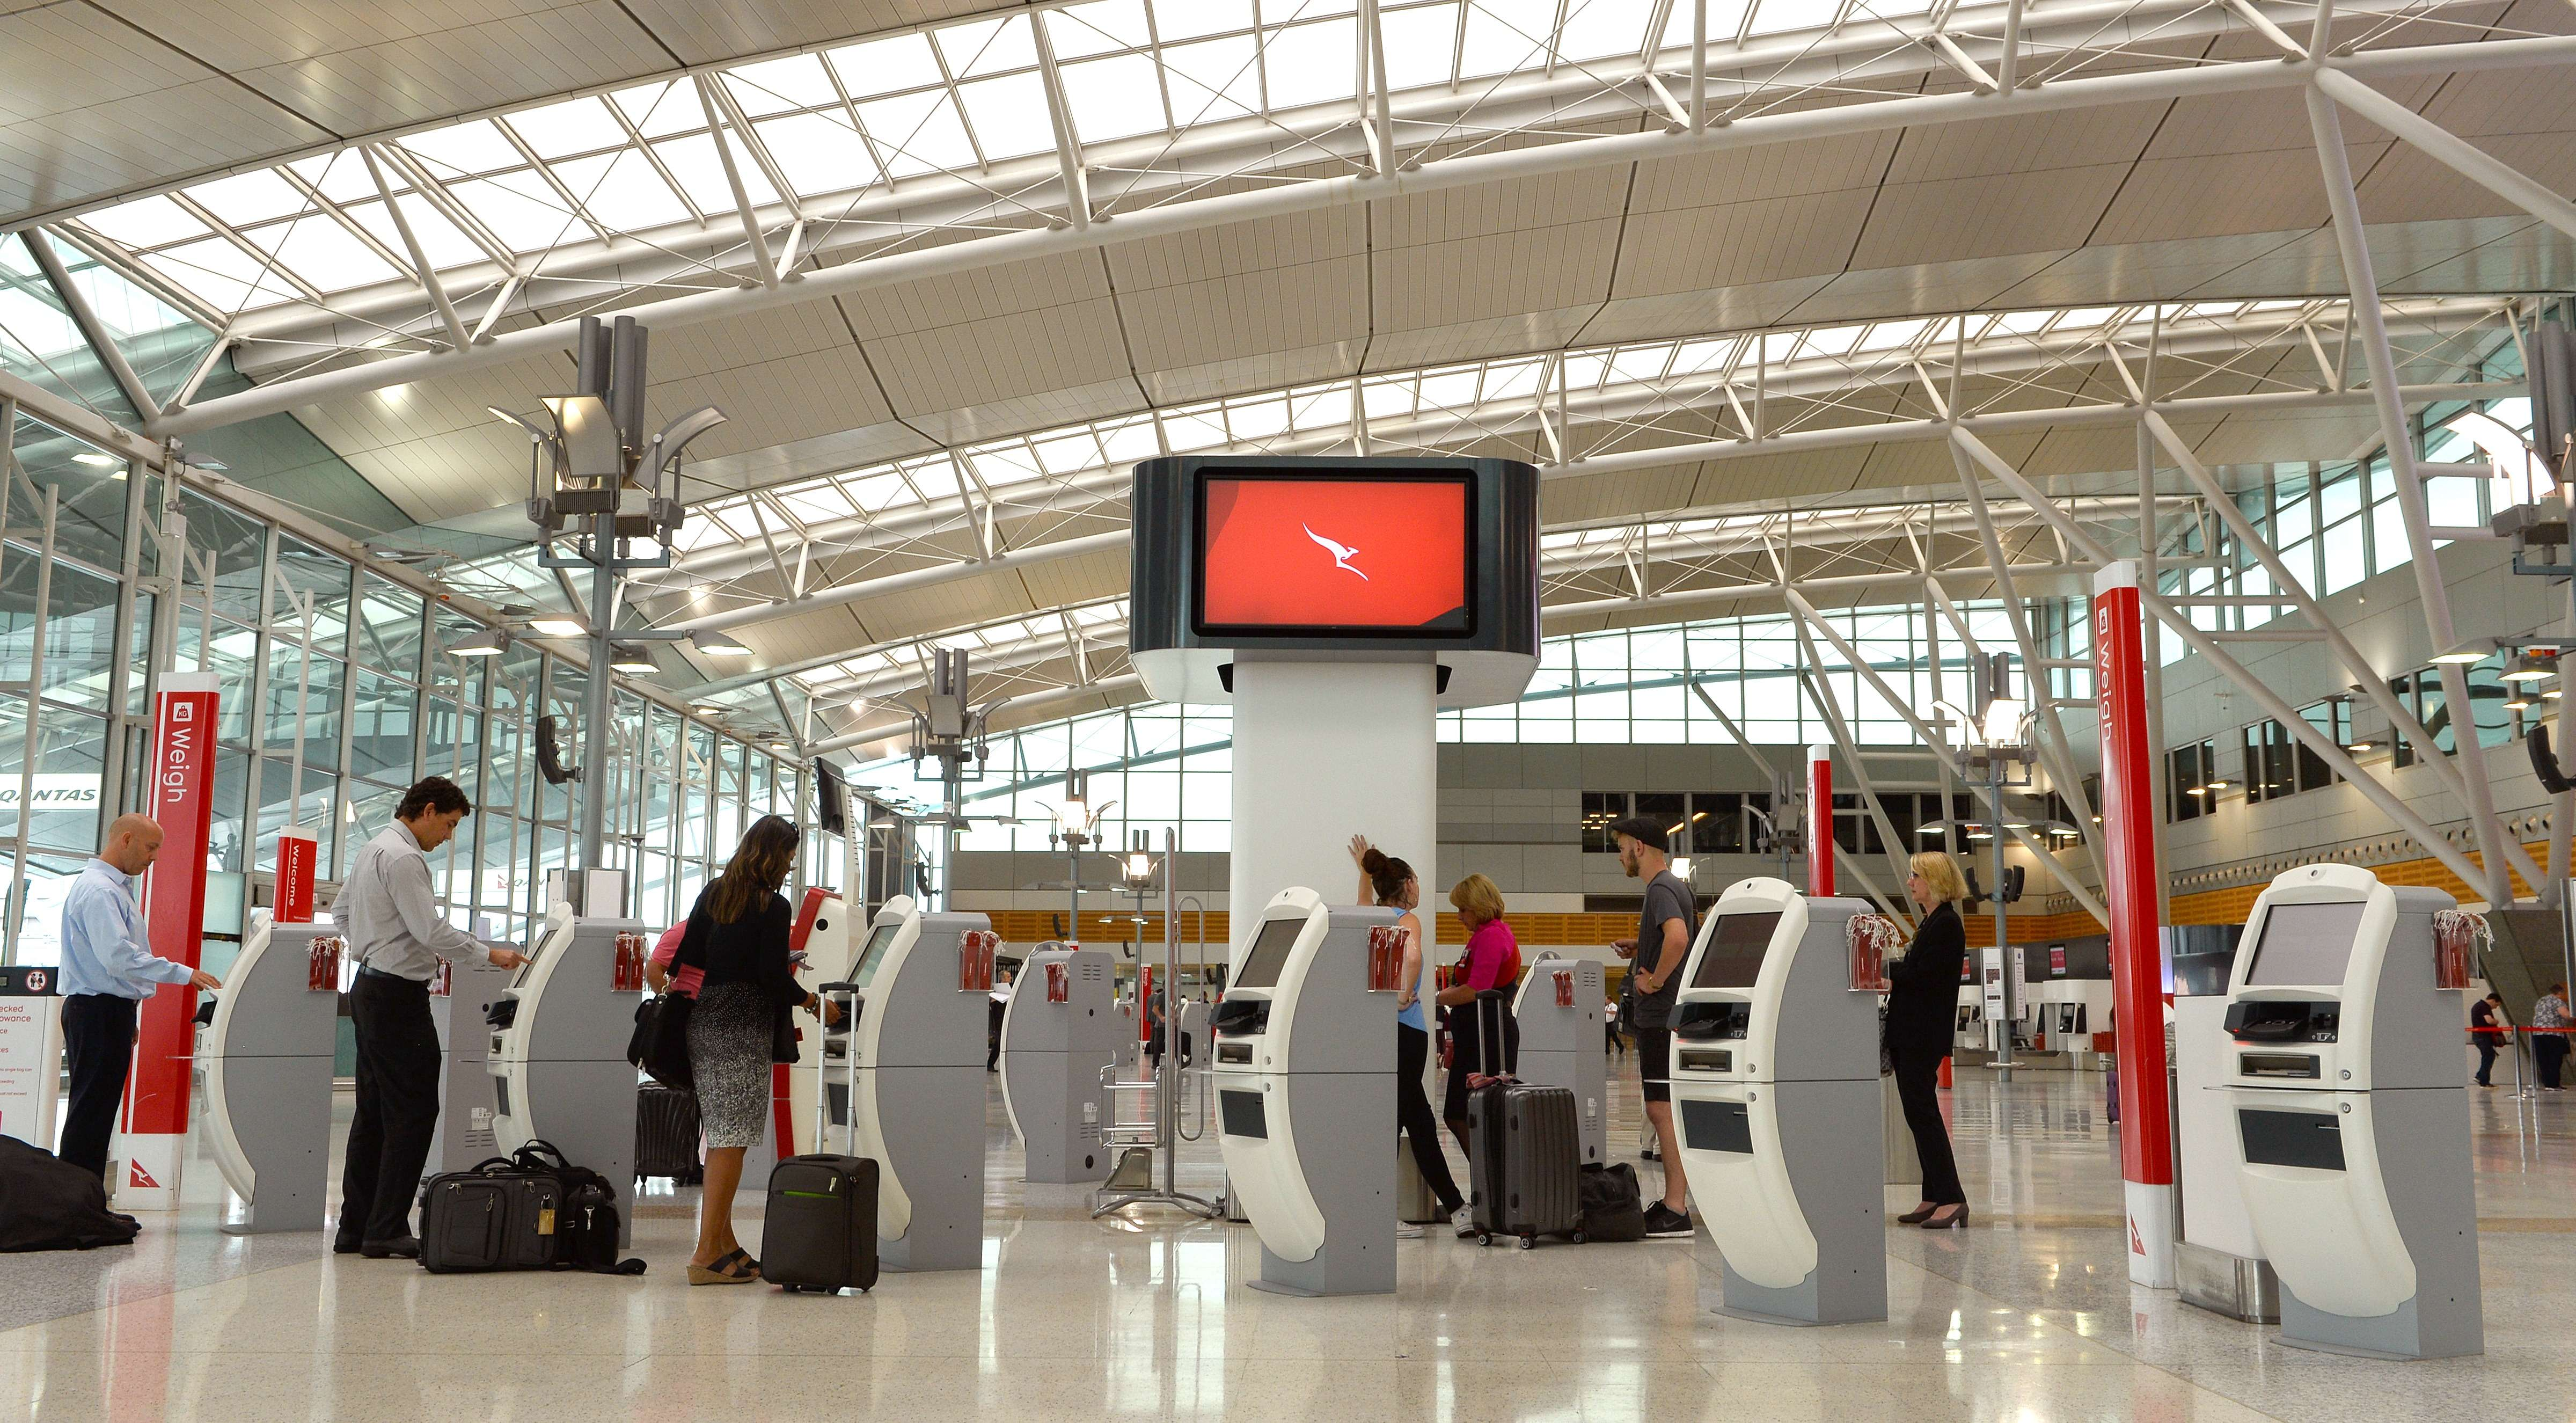 Airports to adopt discreet screening measures to boost security